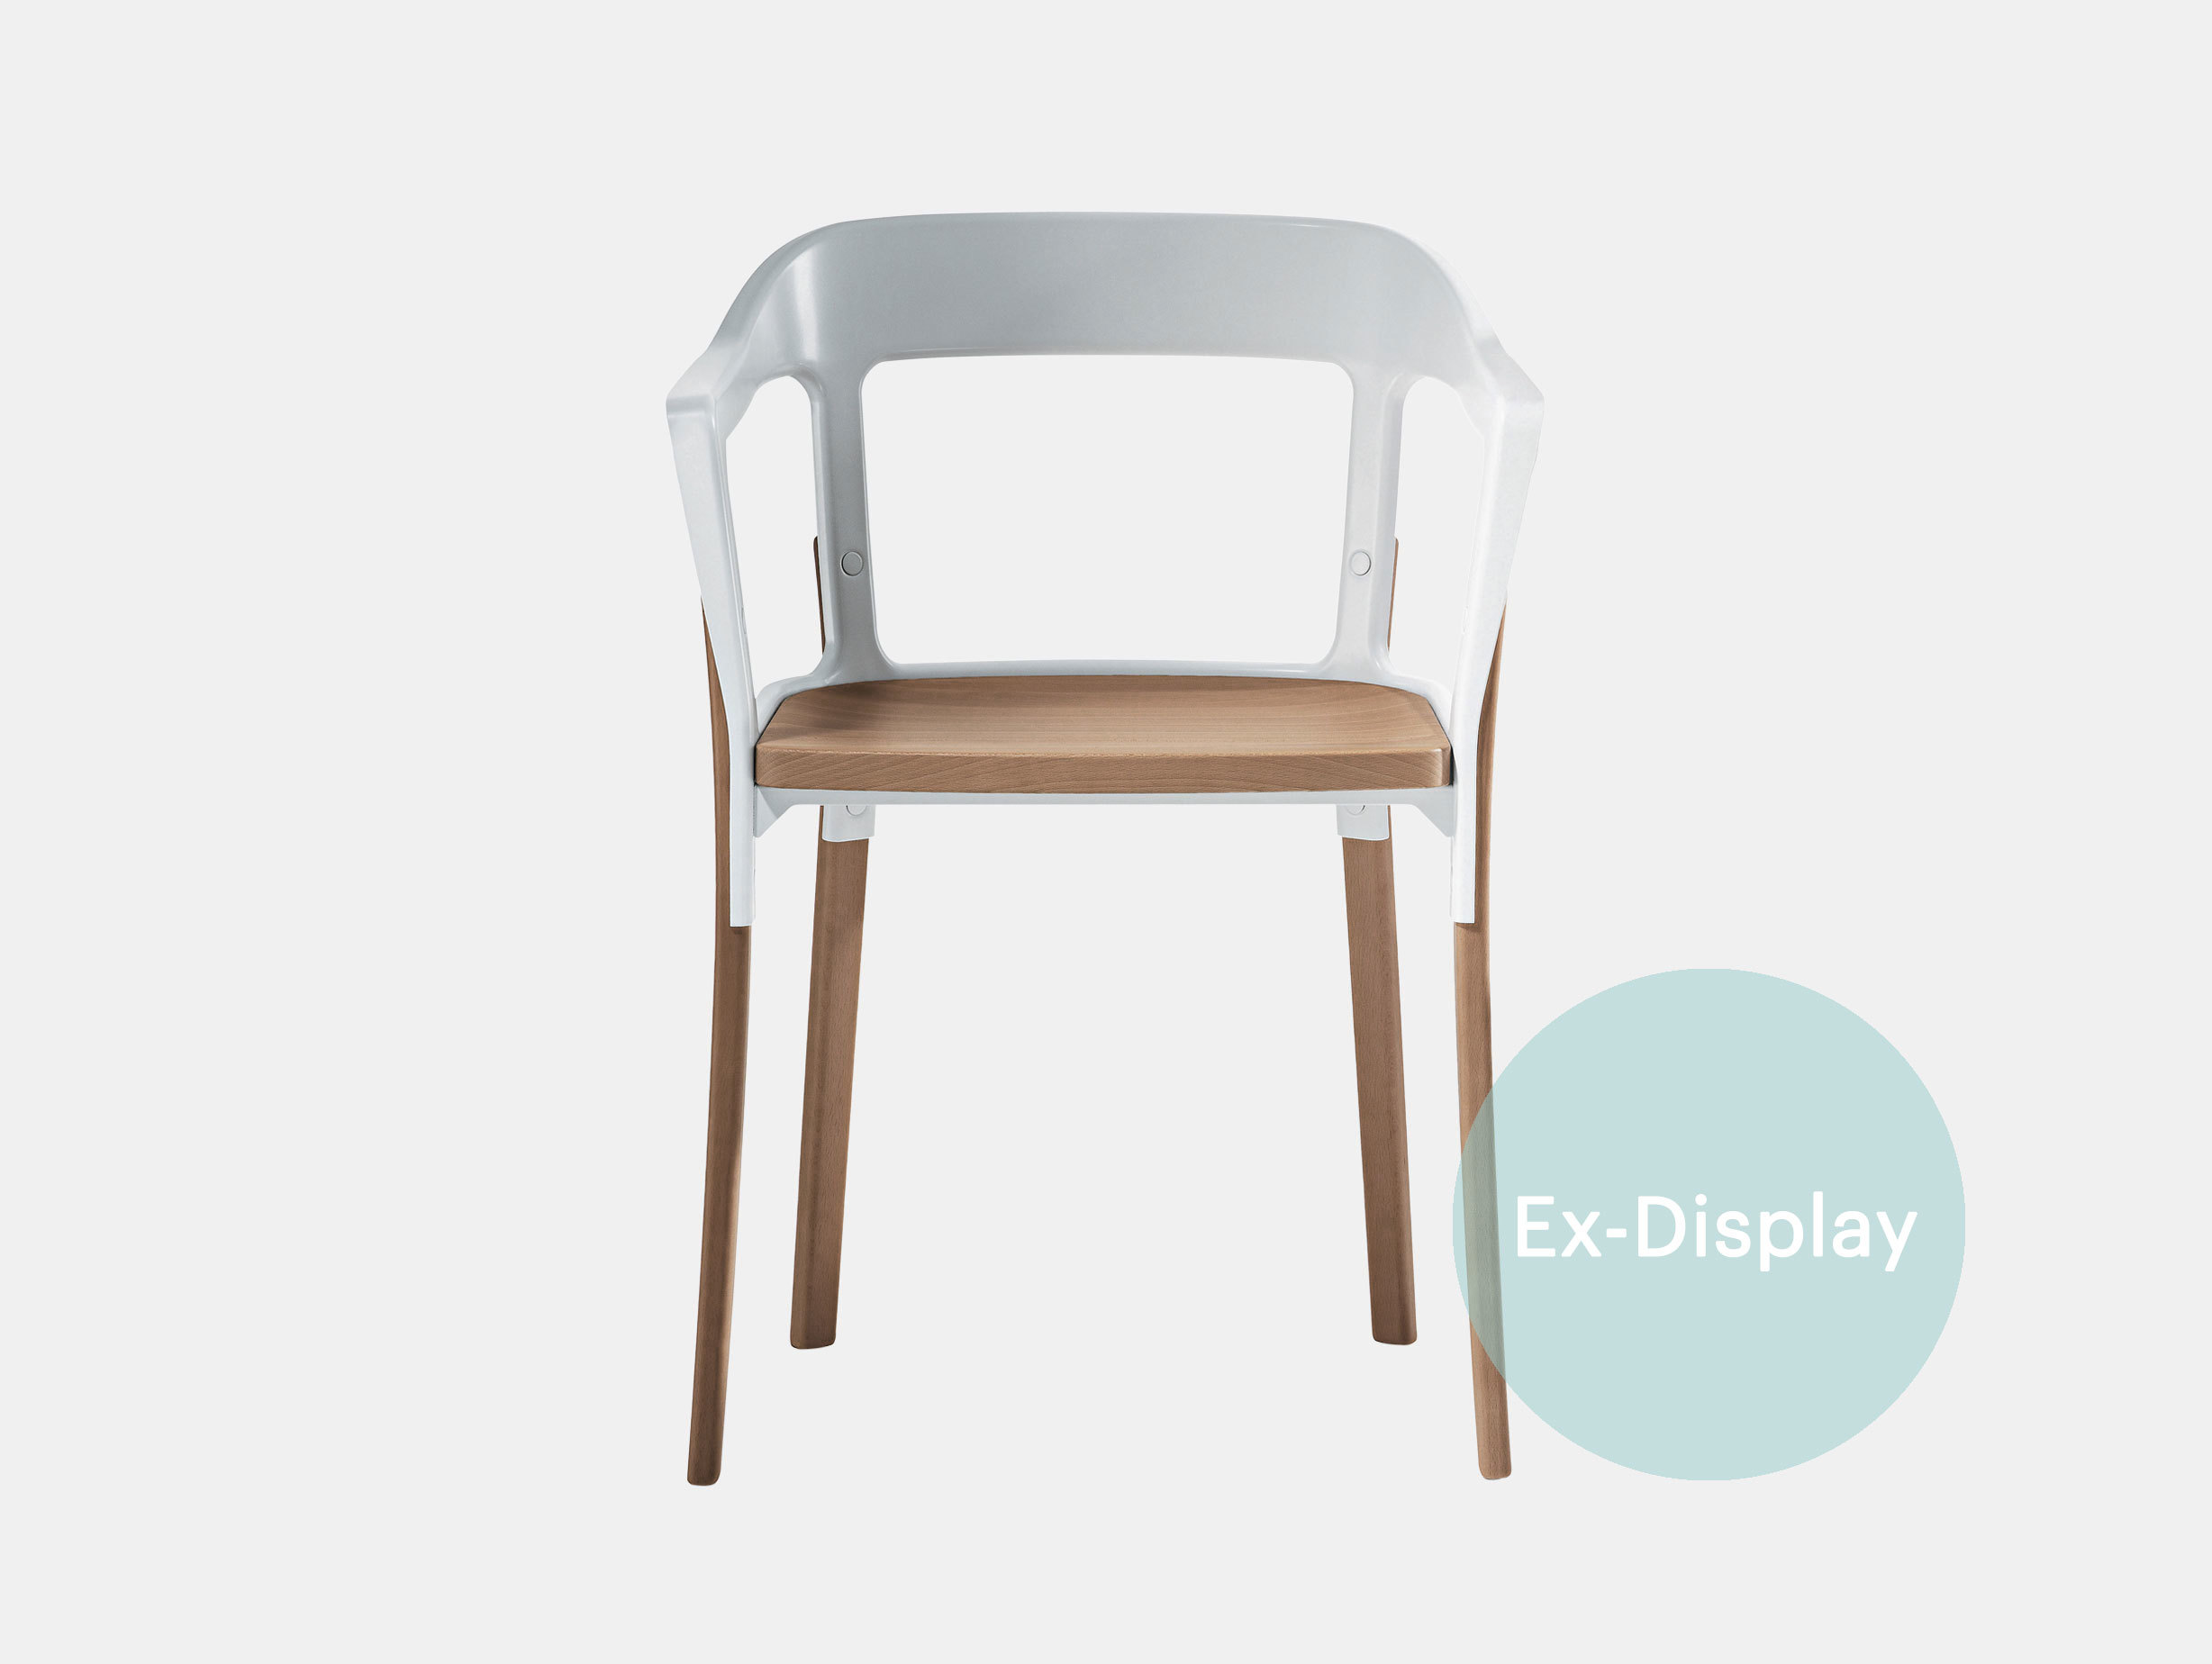 Steelwood Chairs / 40% off at £273 each image 1